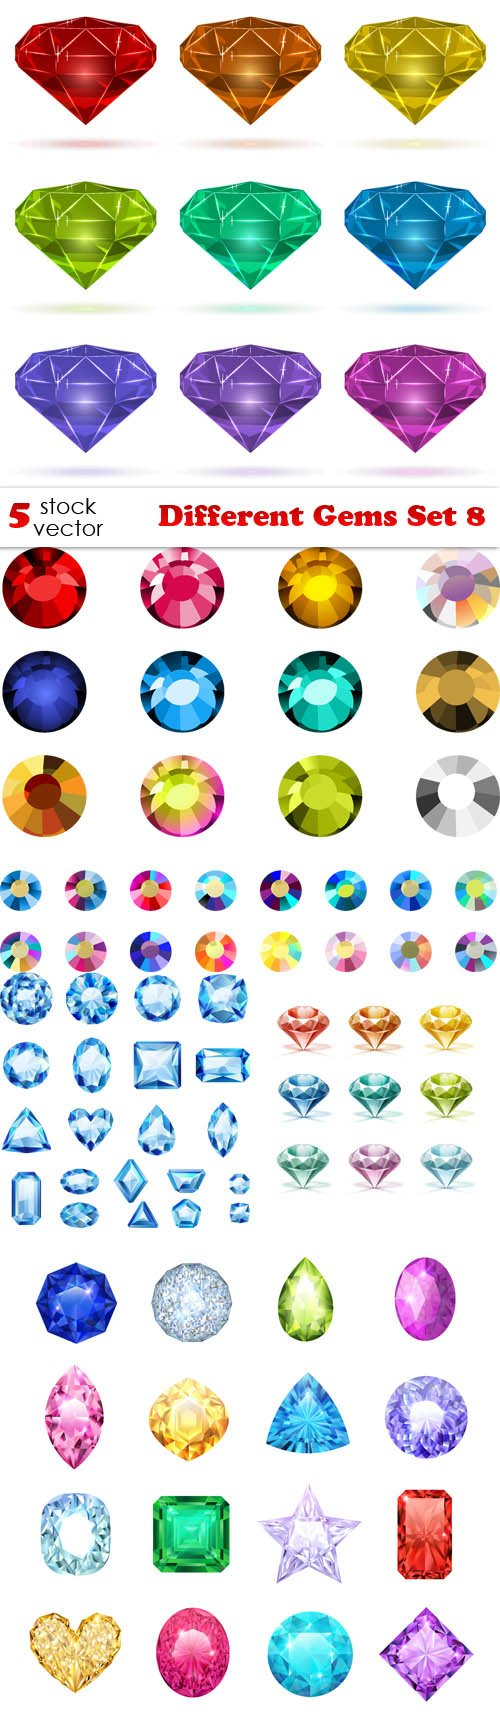 Vectors - Different Gems Set 8